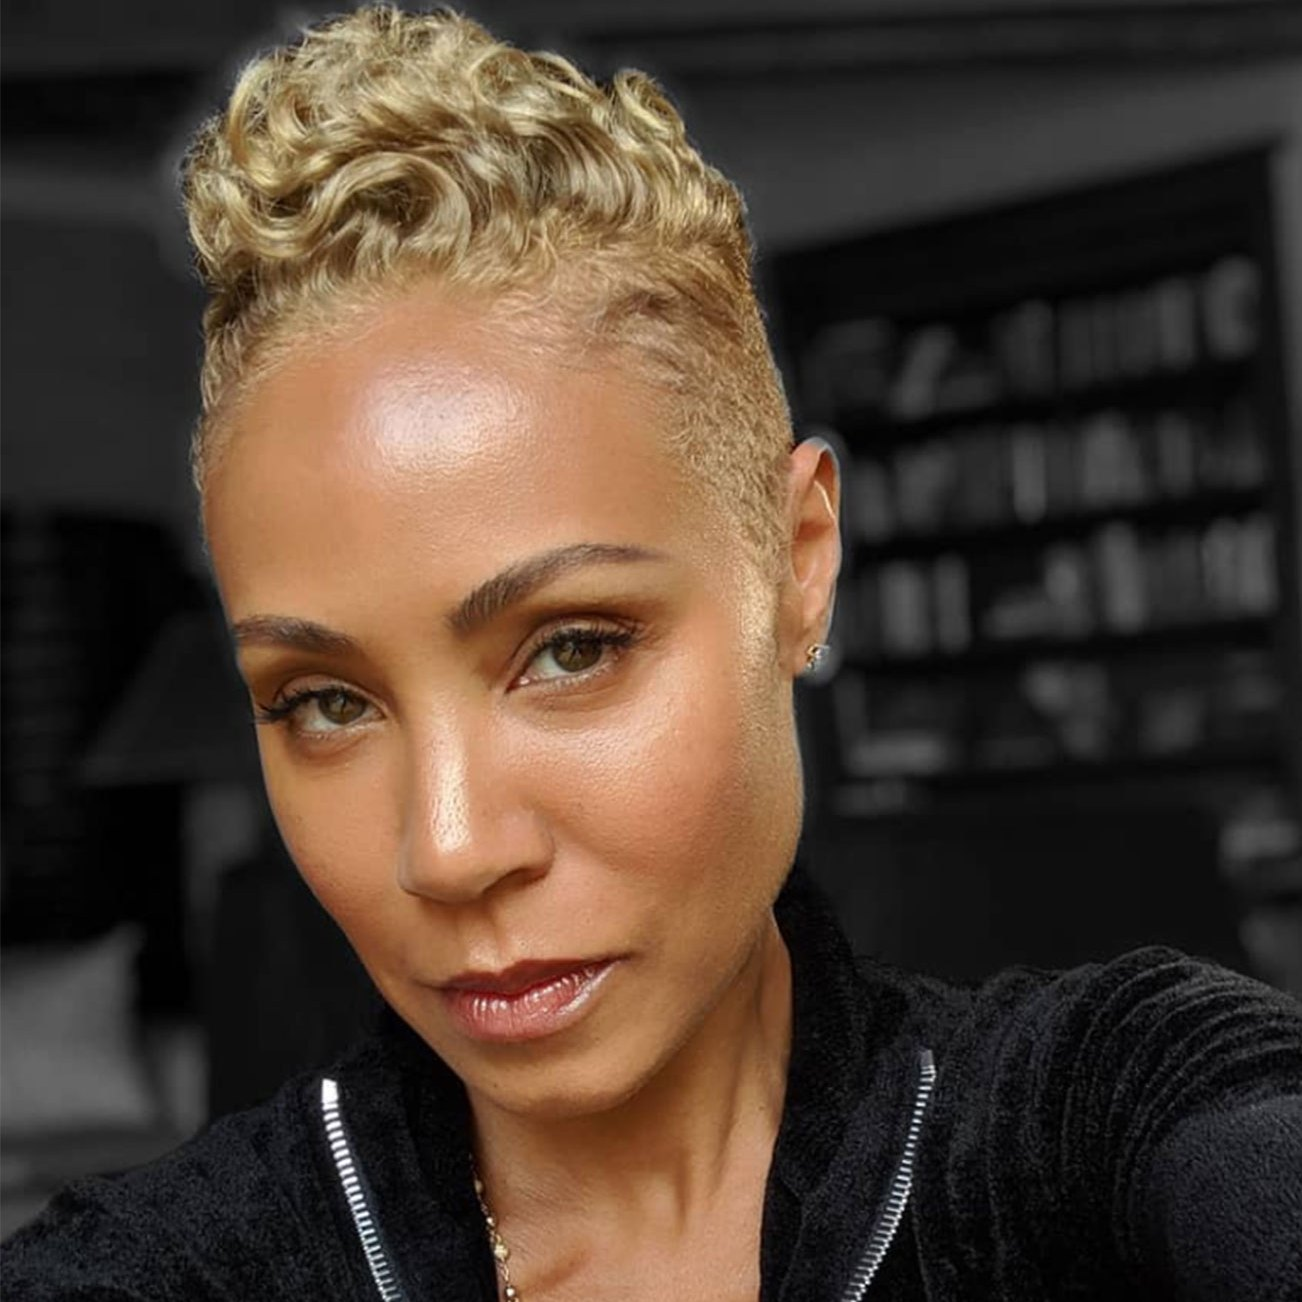 Jada Pinkett Smith Joins Team Blonde, Plus Other Celeb Hair Changes